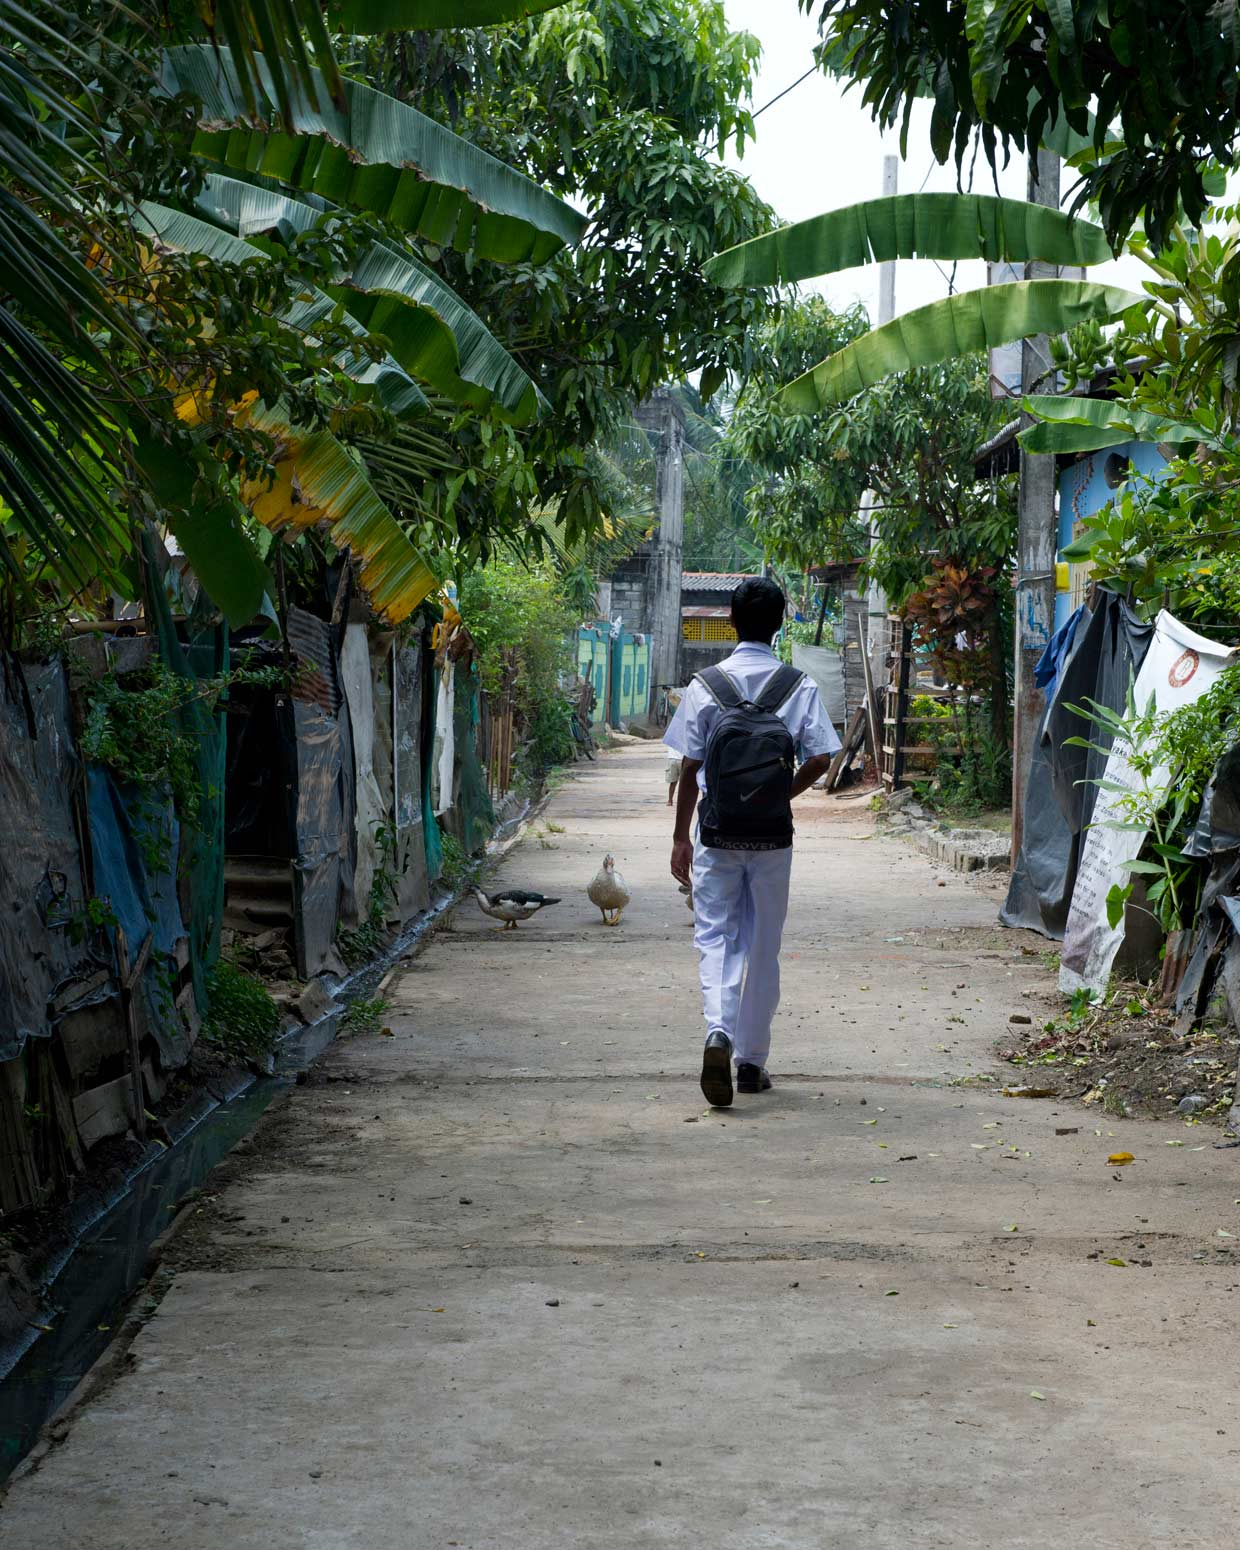 Away from the poverty and deprivation of his natural surroundings, a MJF Kid walks to school with his head held high! The MJF Kids Programme supports promising young students from marginalised communities achieve their potential since 2006.